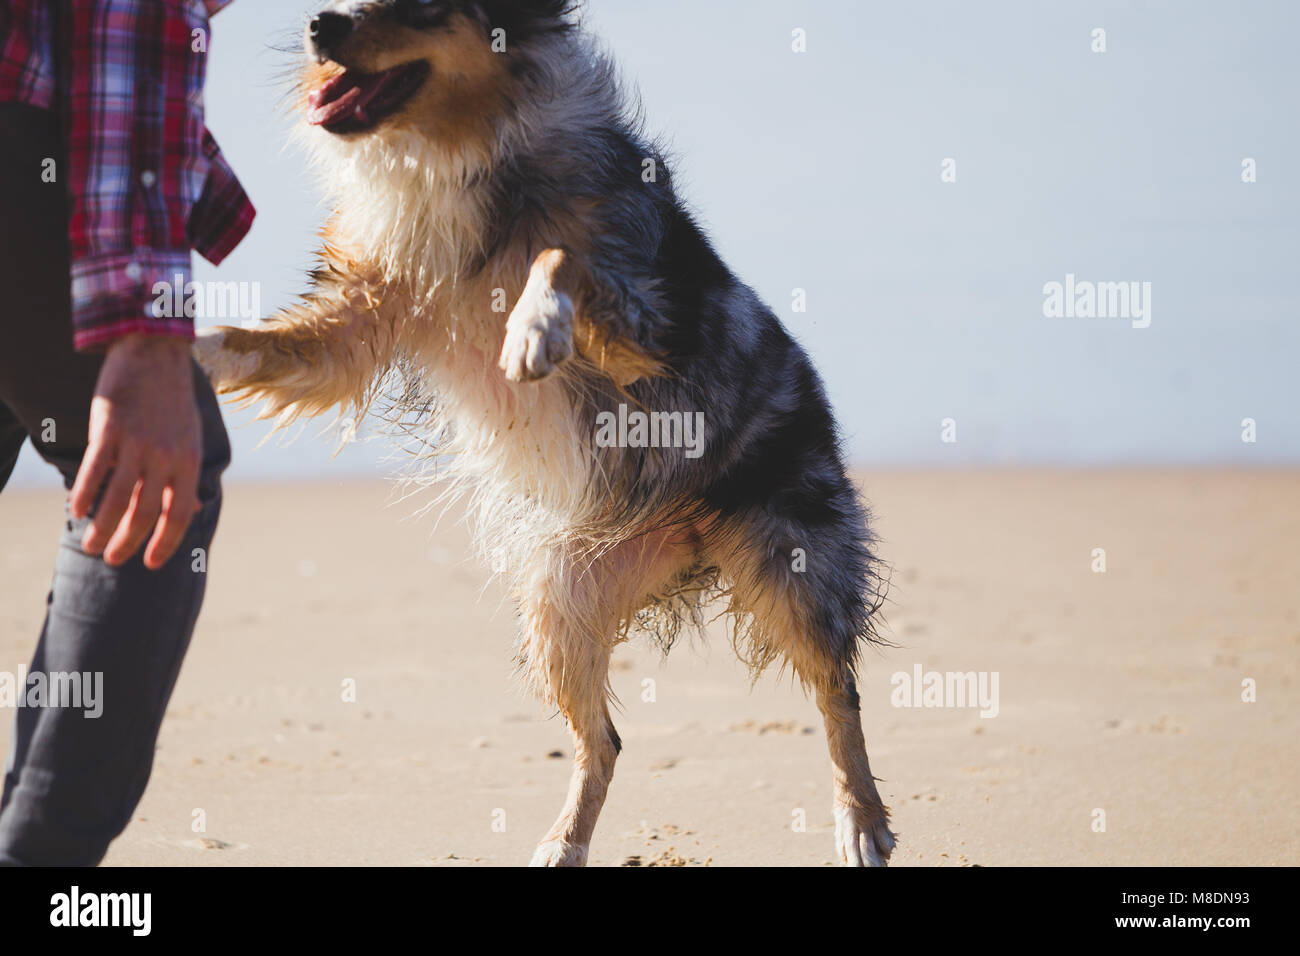 Man playing with leaping dog on beach, cropped - Stock Image